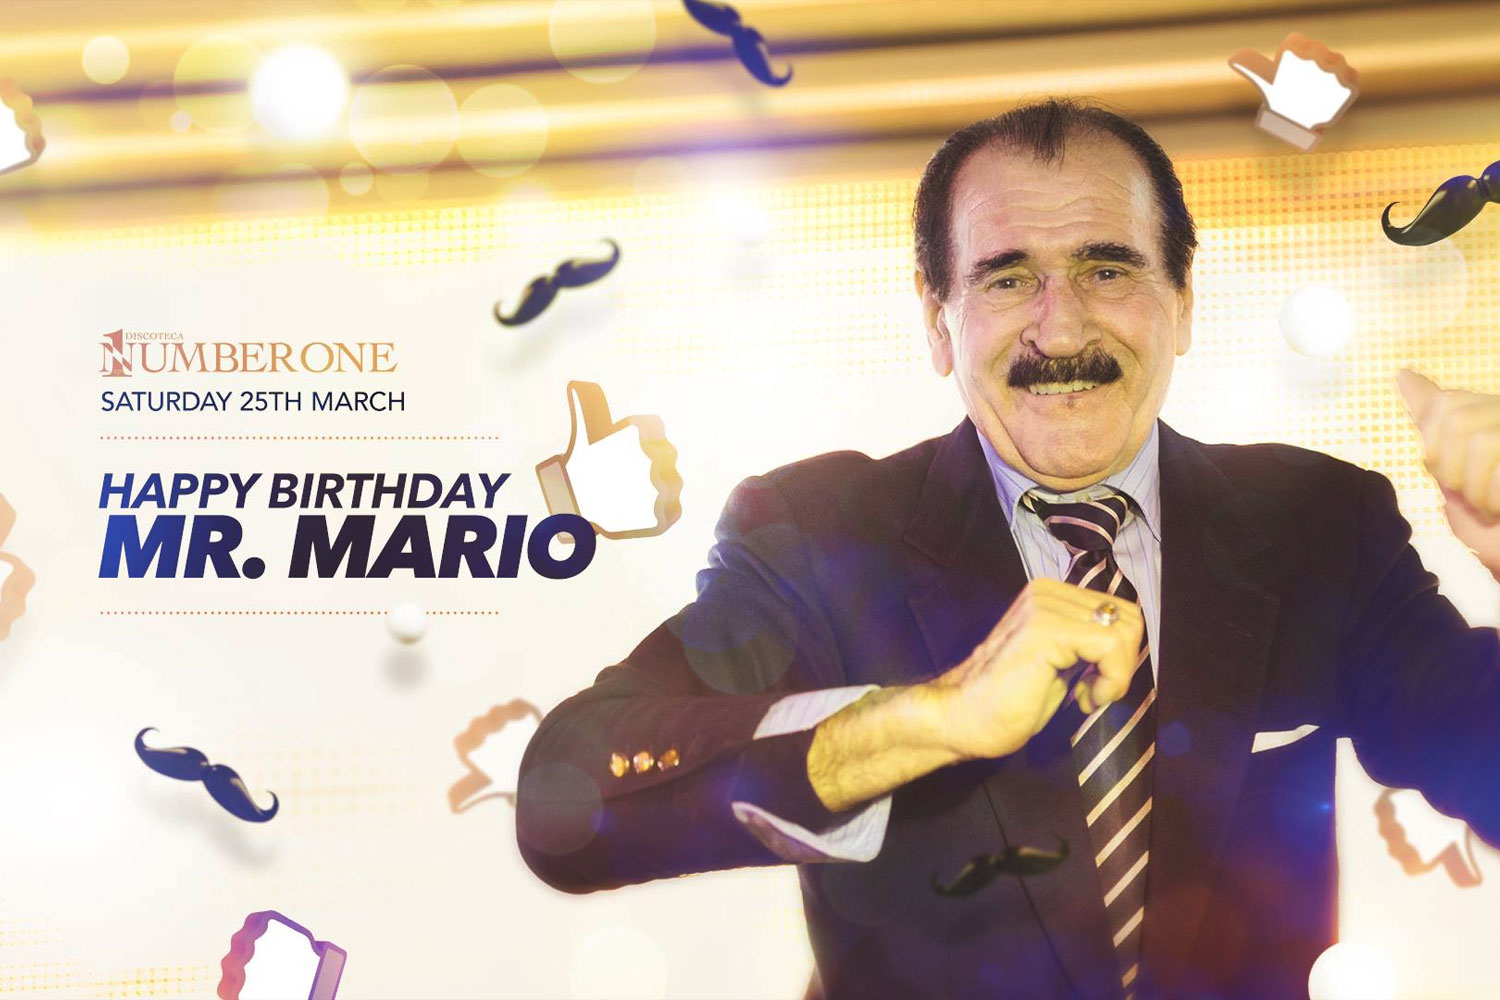 Happy Birthday Mr. Mario